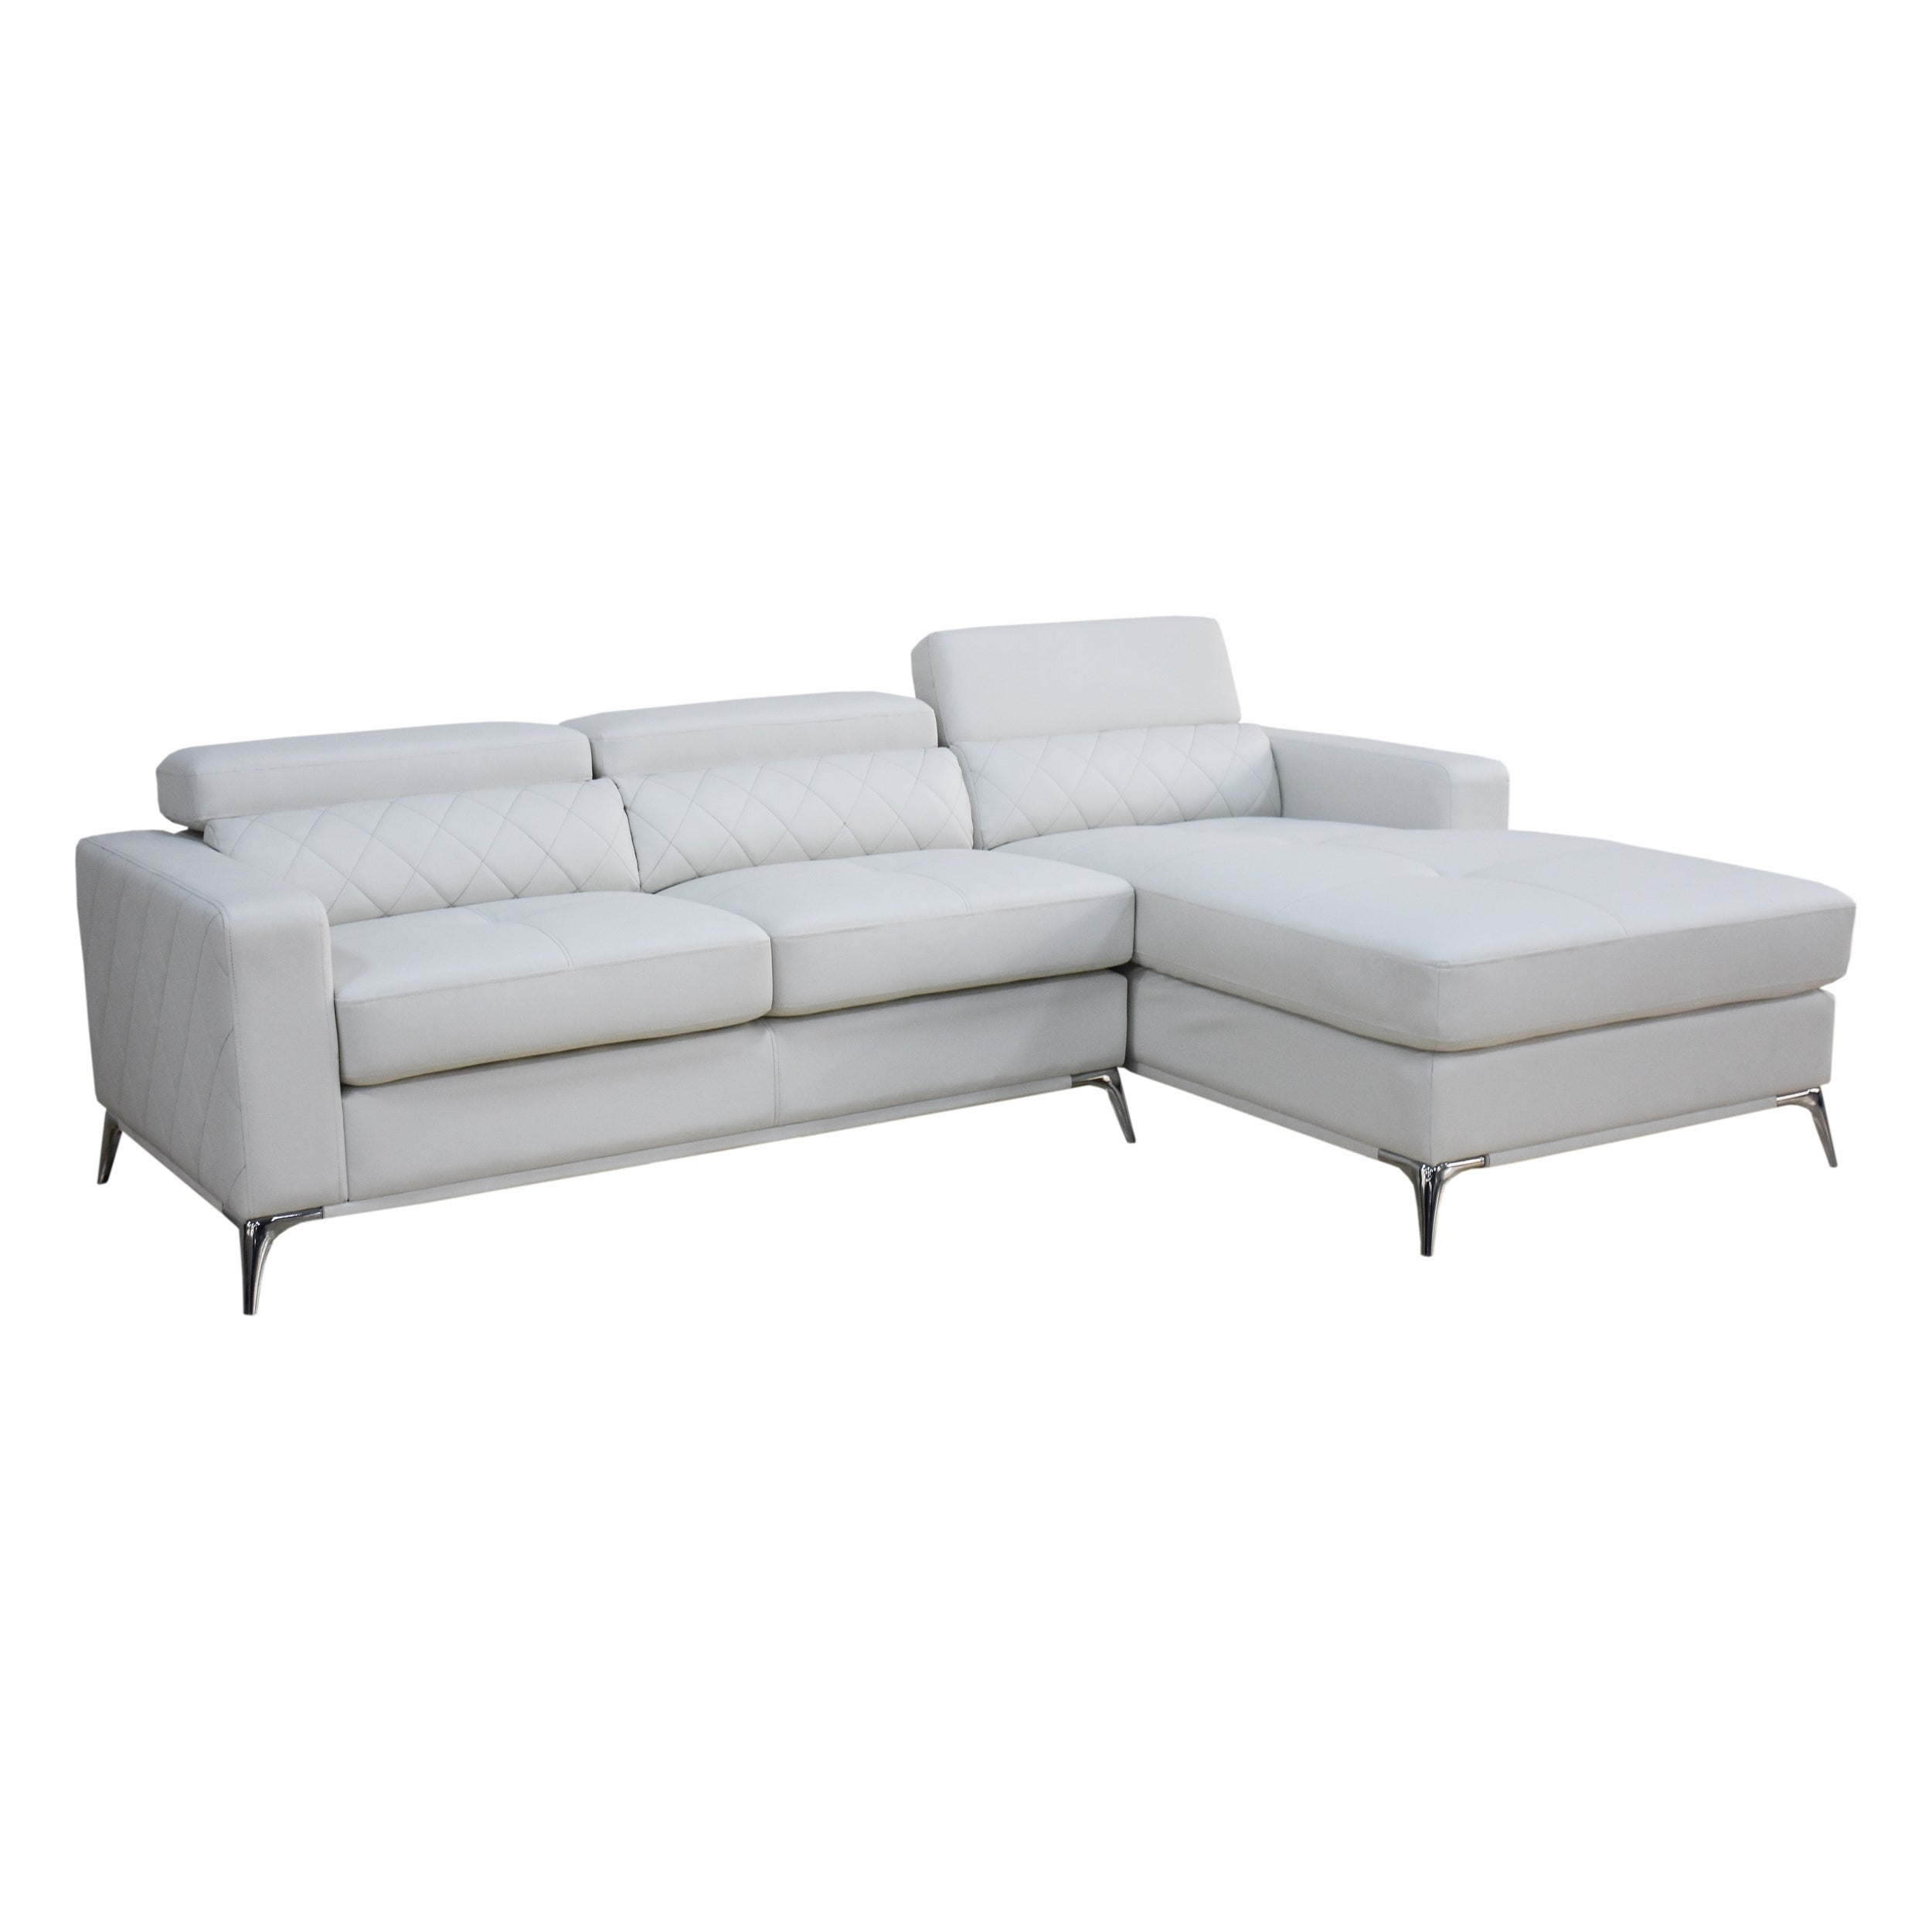 Shop White Faux Leather Sectional Sofa Right Facing Chaise Free